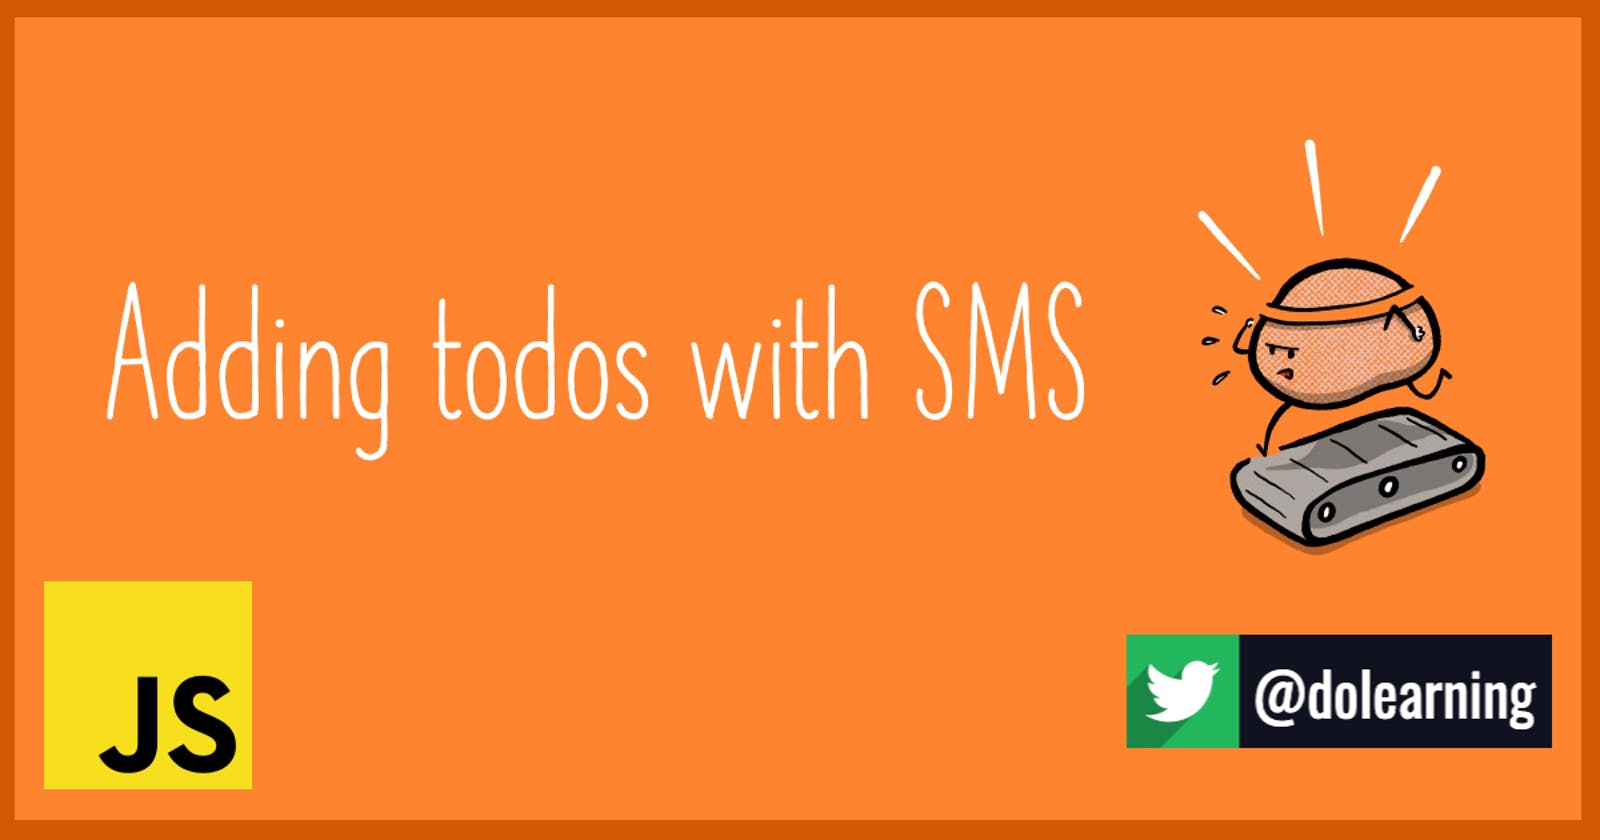 Adding todos with SMS